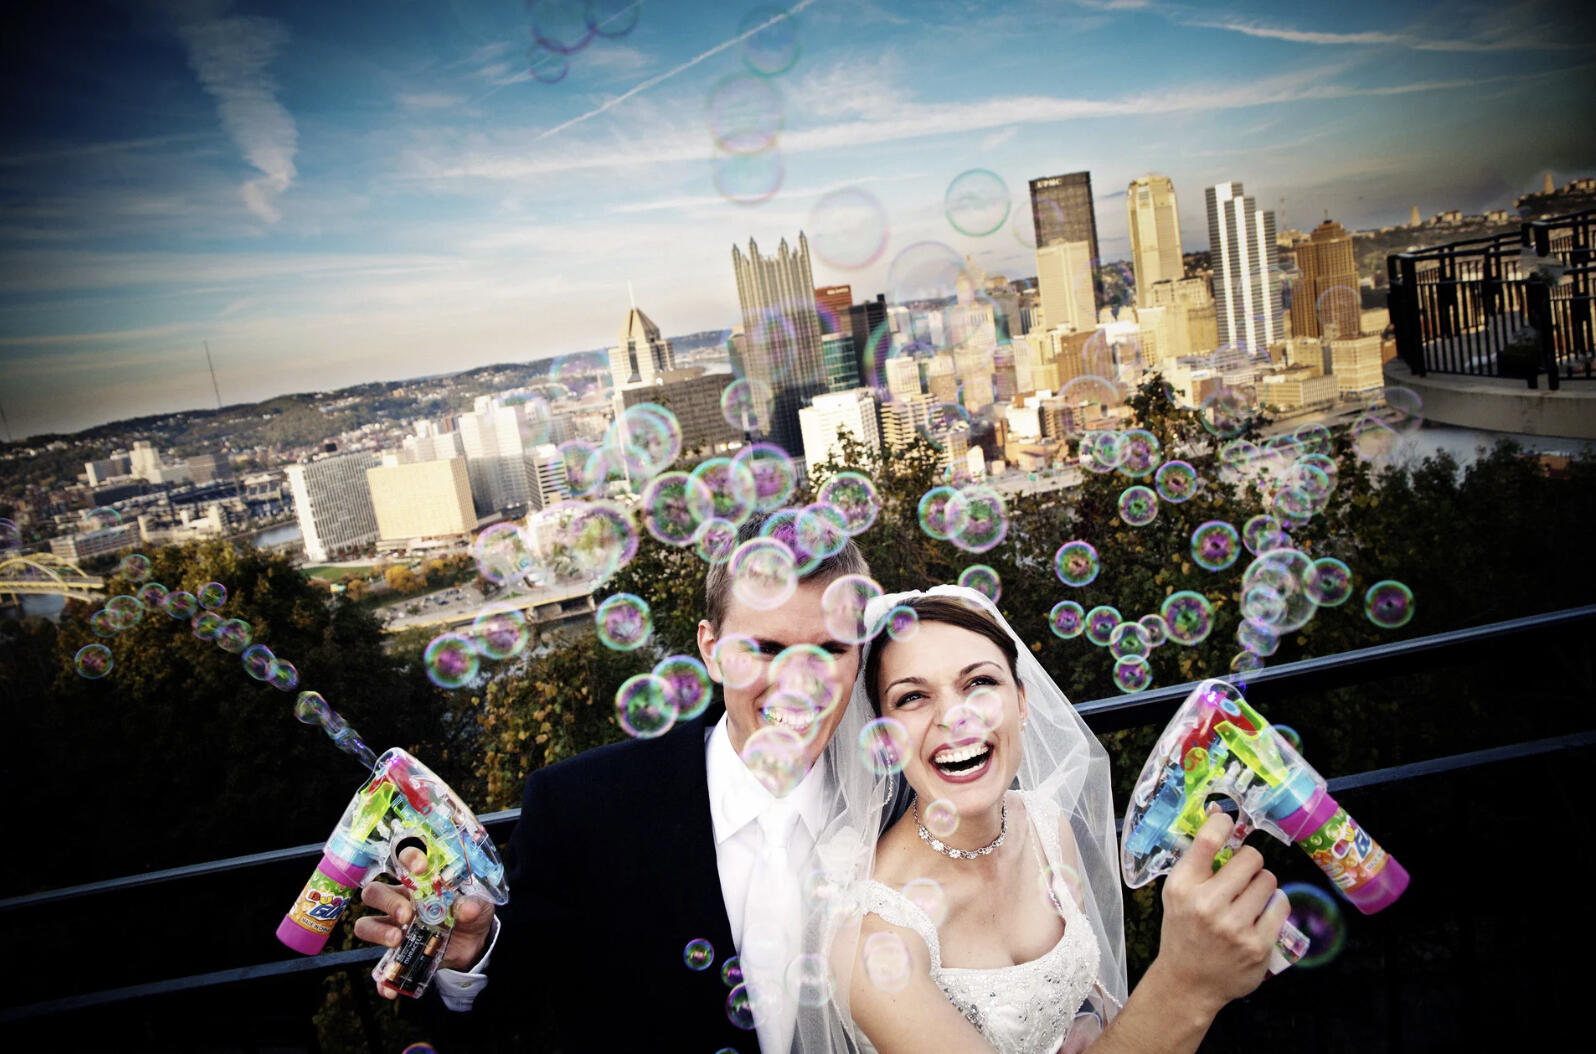 Candid image of a bride and groom posing with soap bubble guns